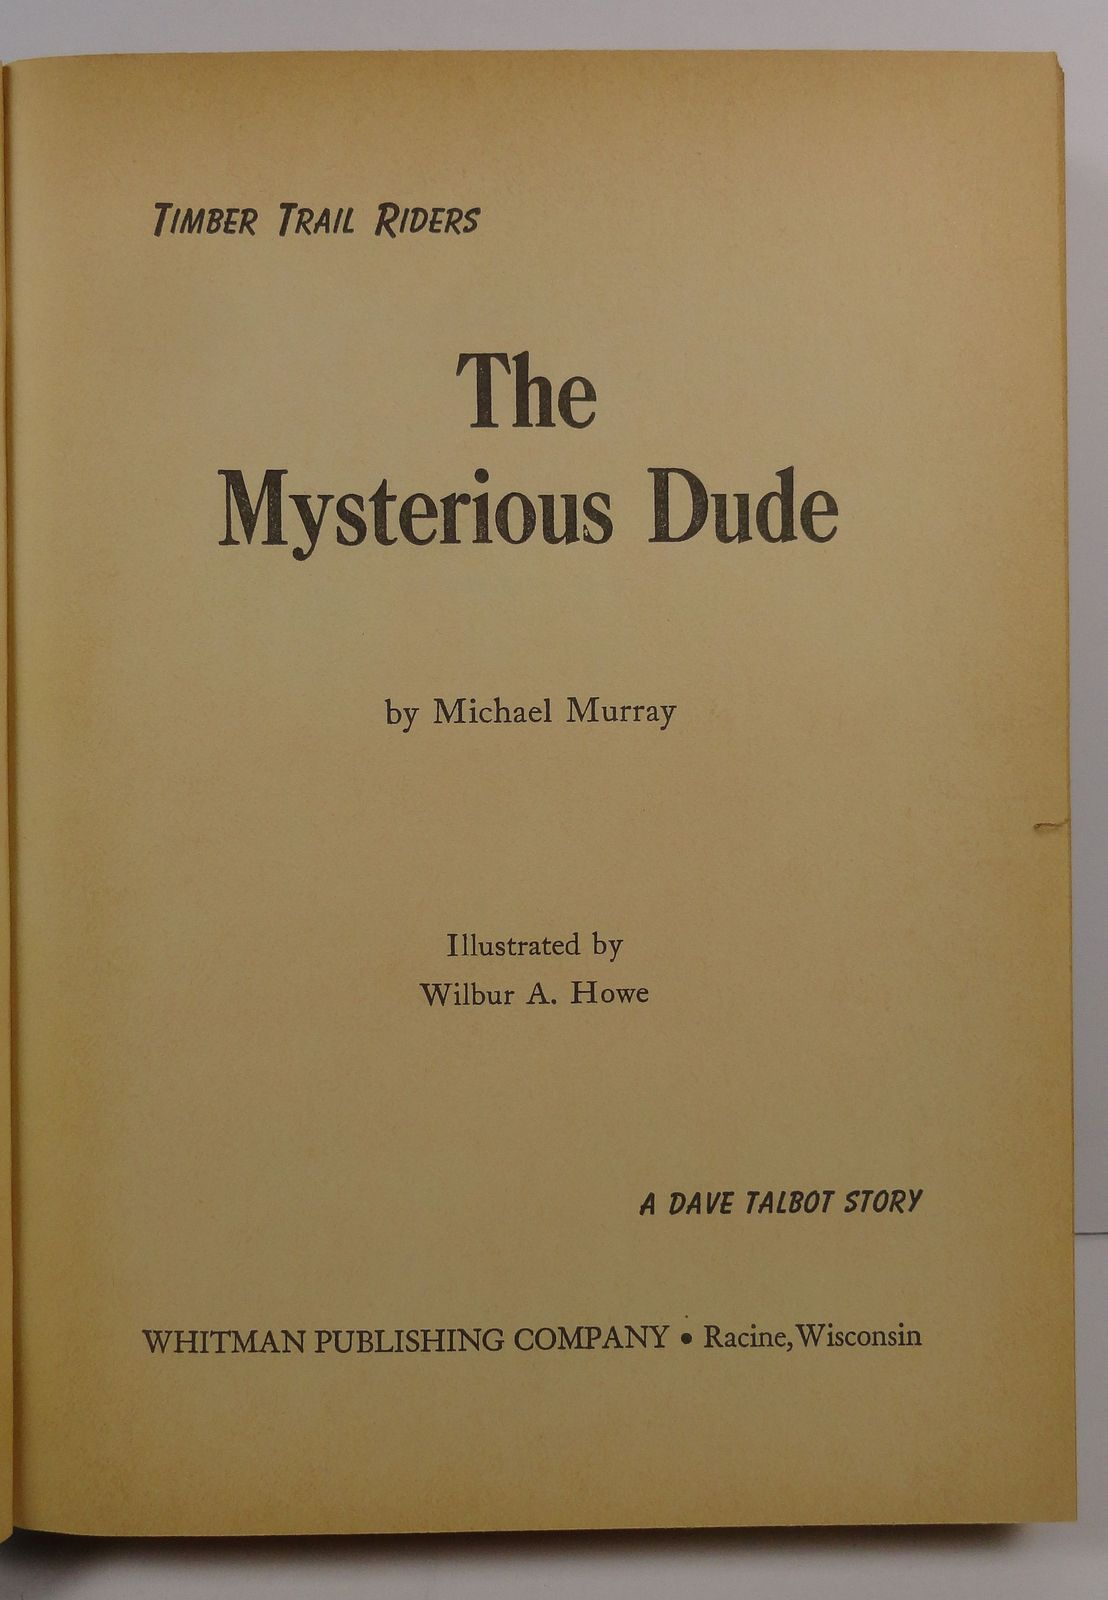 Timber Trail Riders The Mysterious Dude by Michael Murray